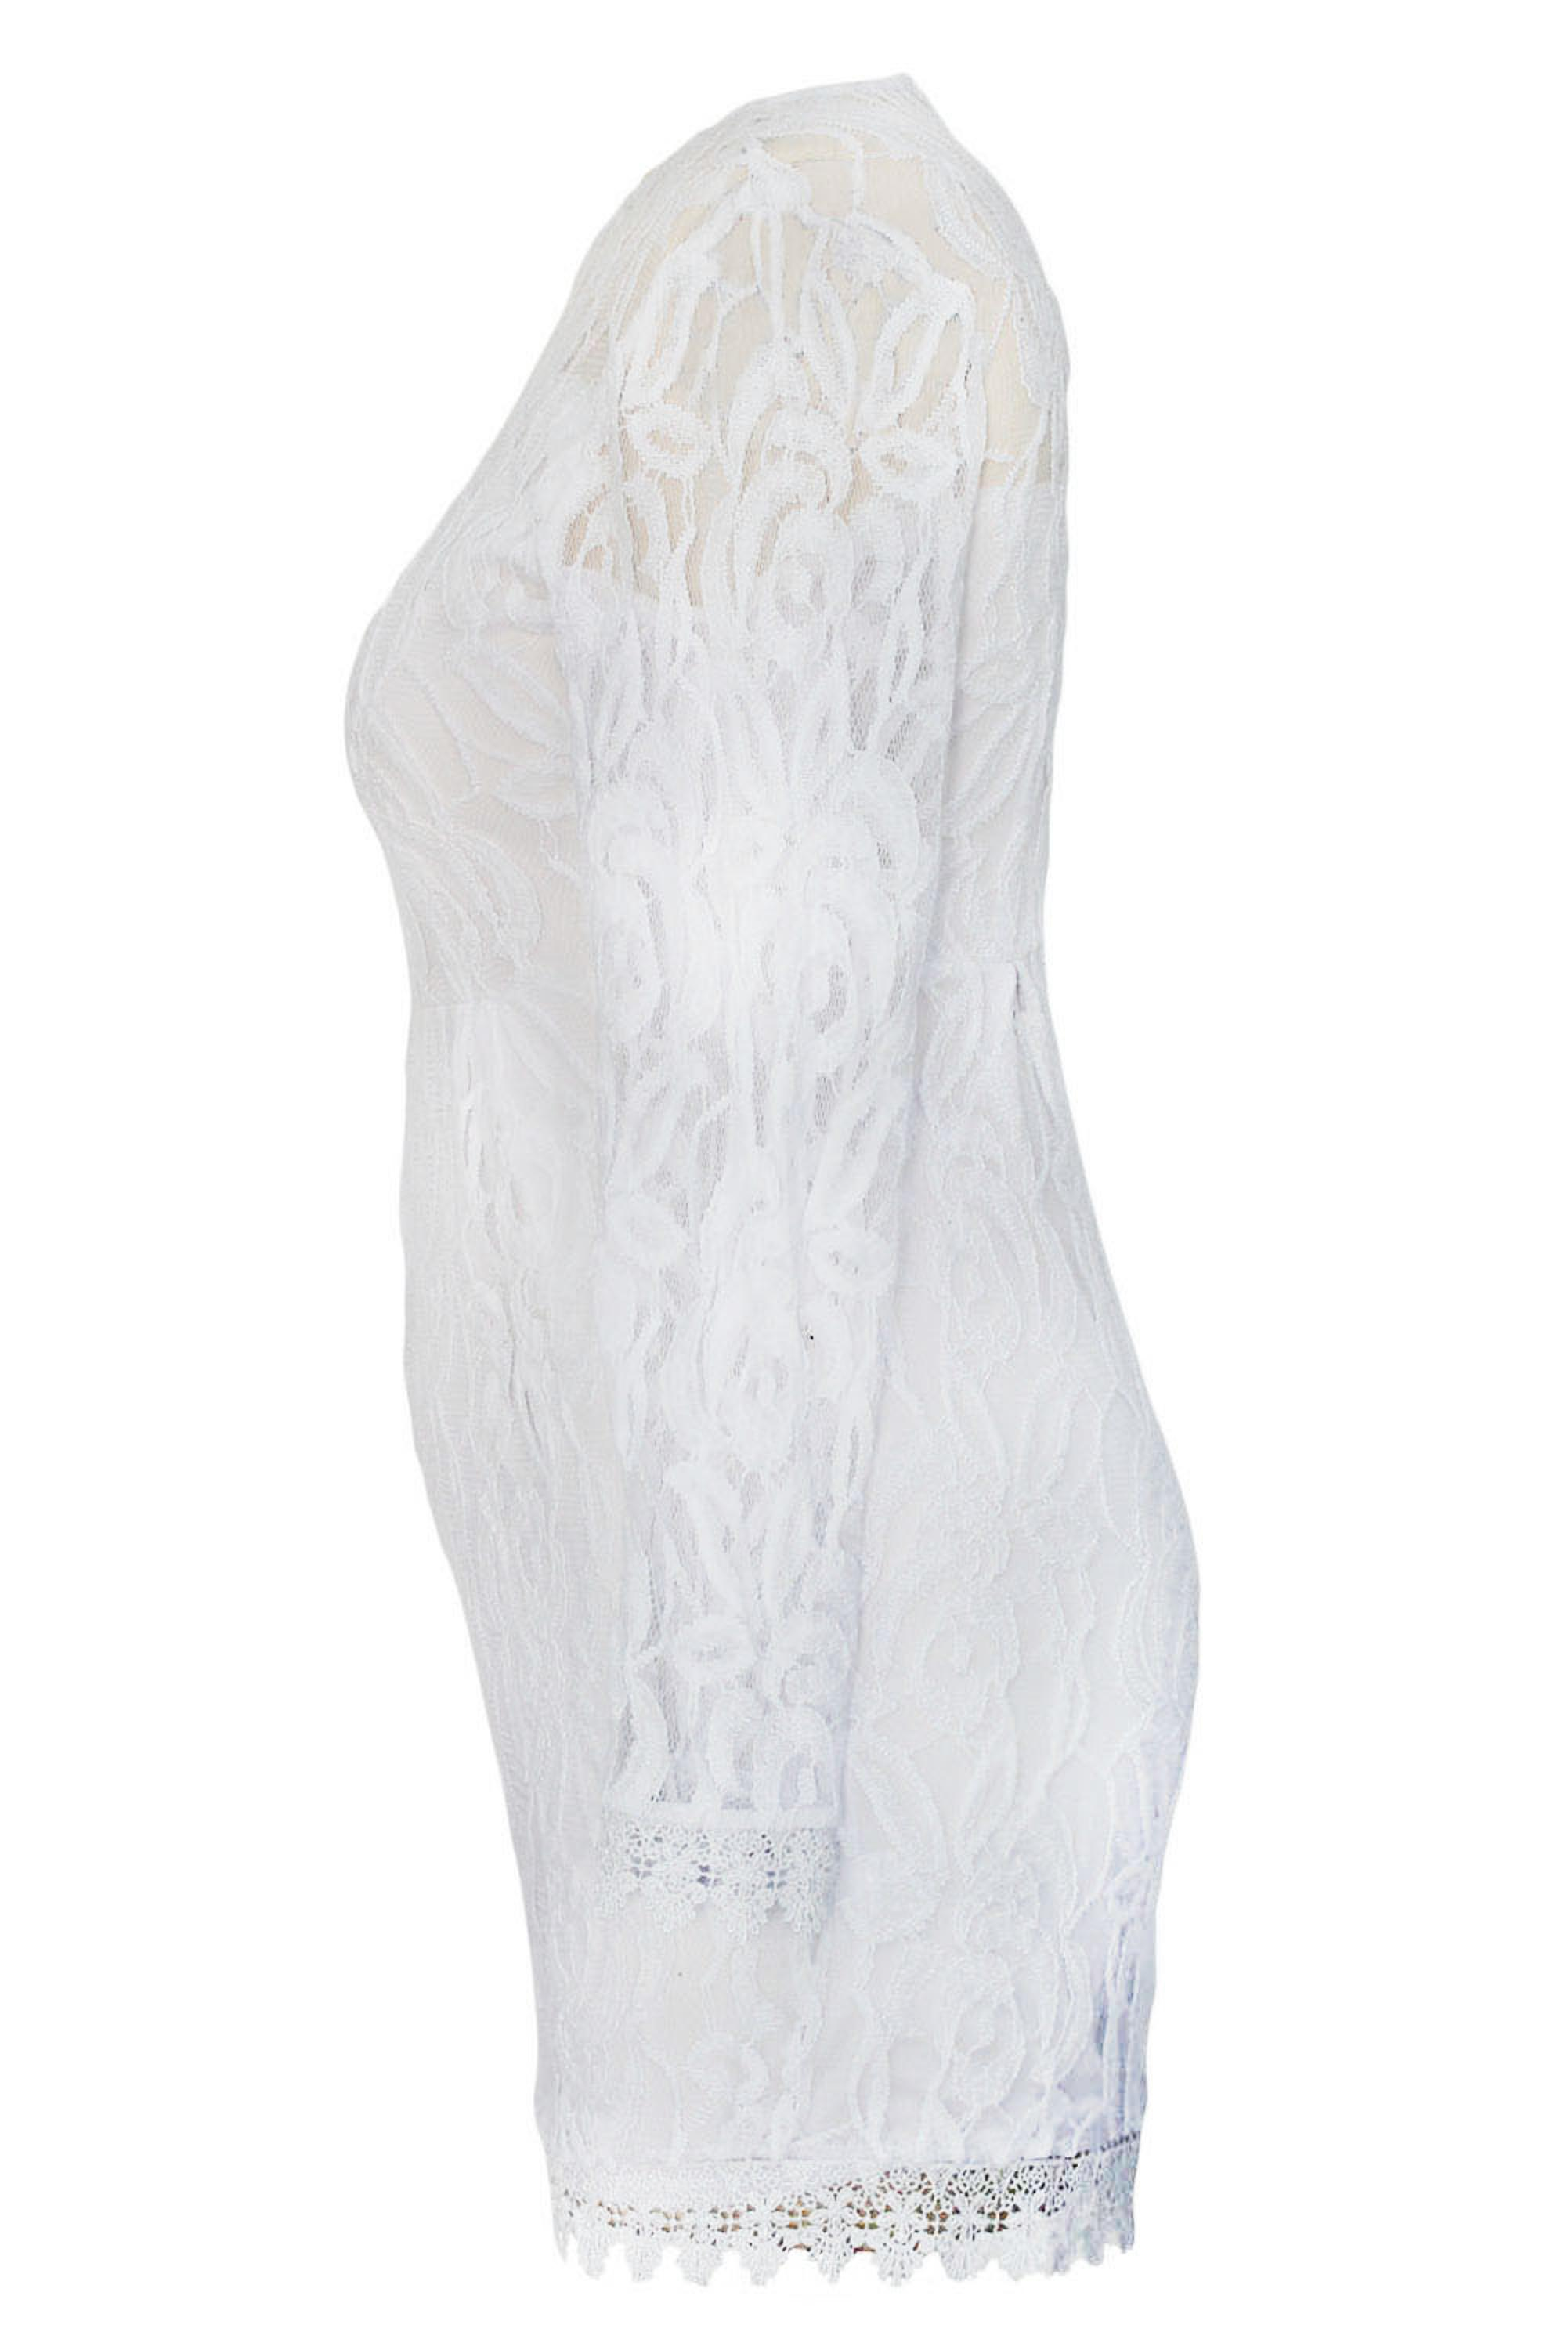 White-Plus-Size-Long-Sleeve-Lace-Romper-LC60599-1-4